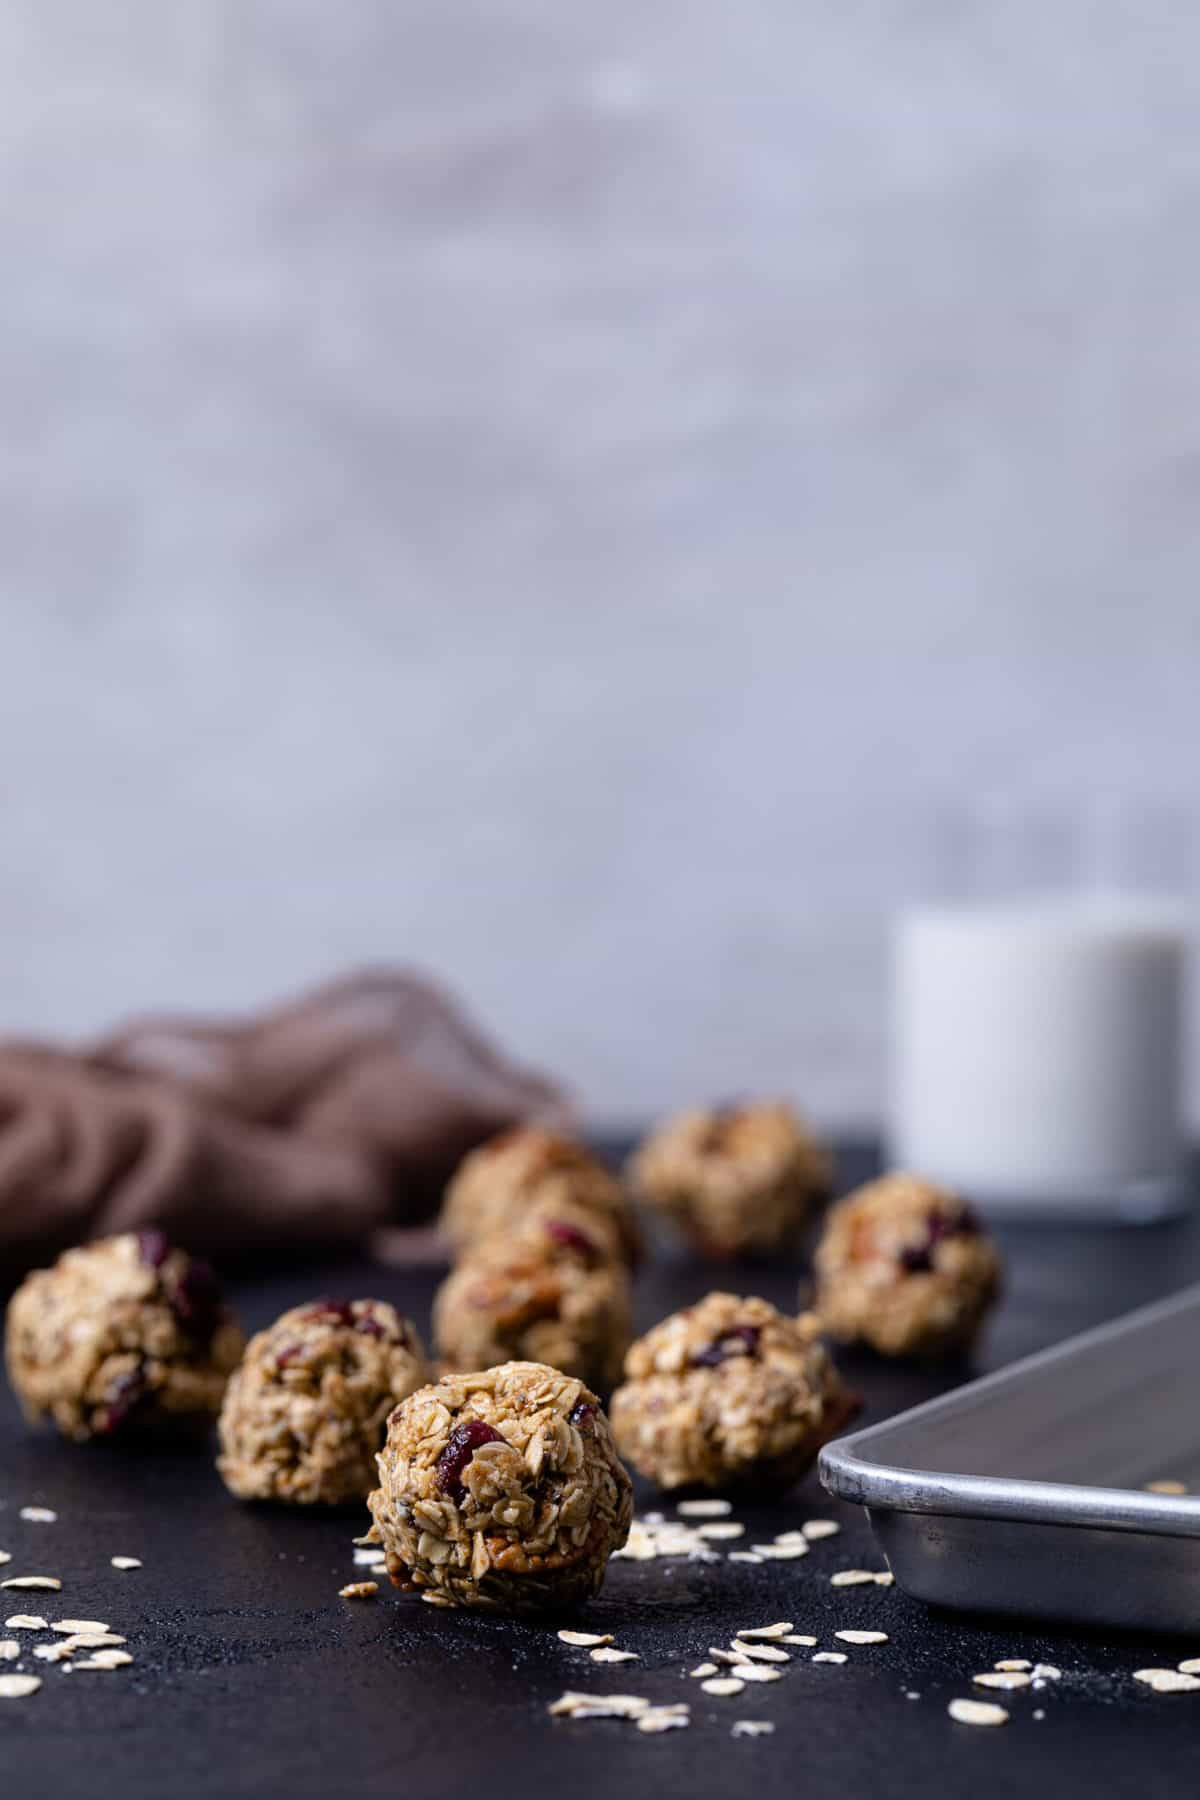 White Chocolate Cranberry Energy Bites next to a baking dish on a black table